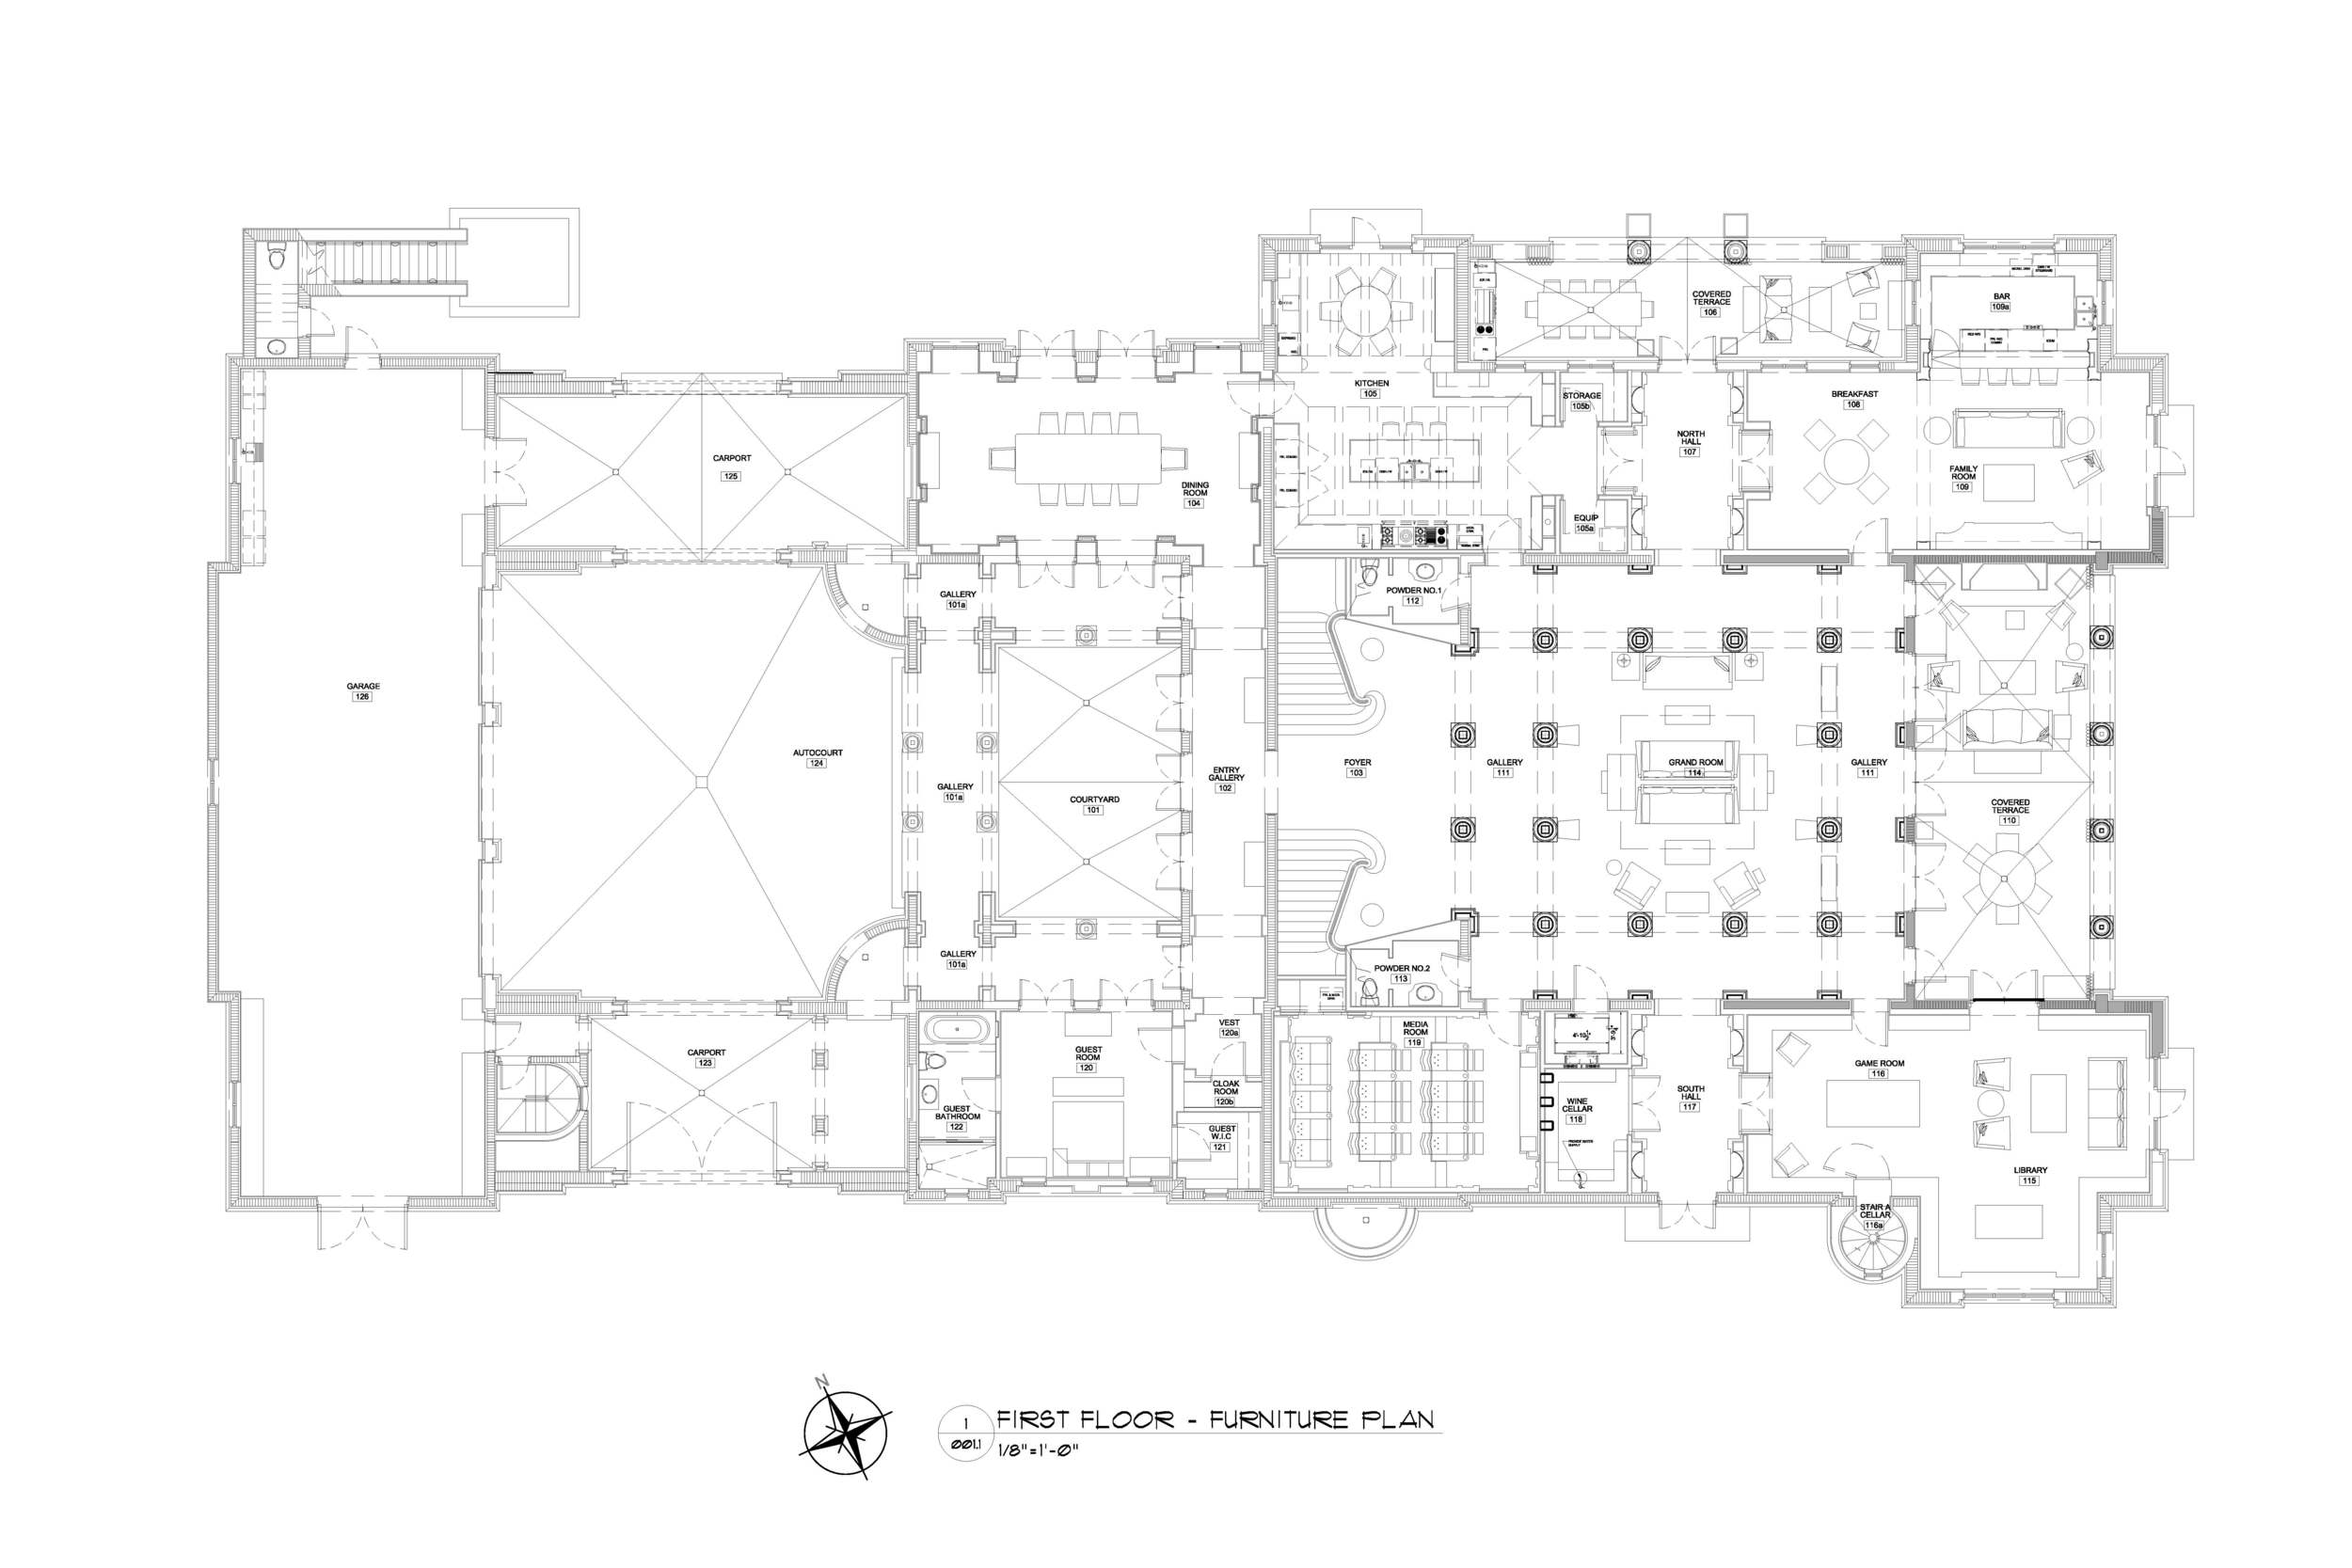 000-1.1 FURNITURE PLAN - FIRST FLOOR.jpg